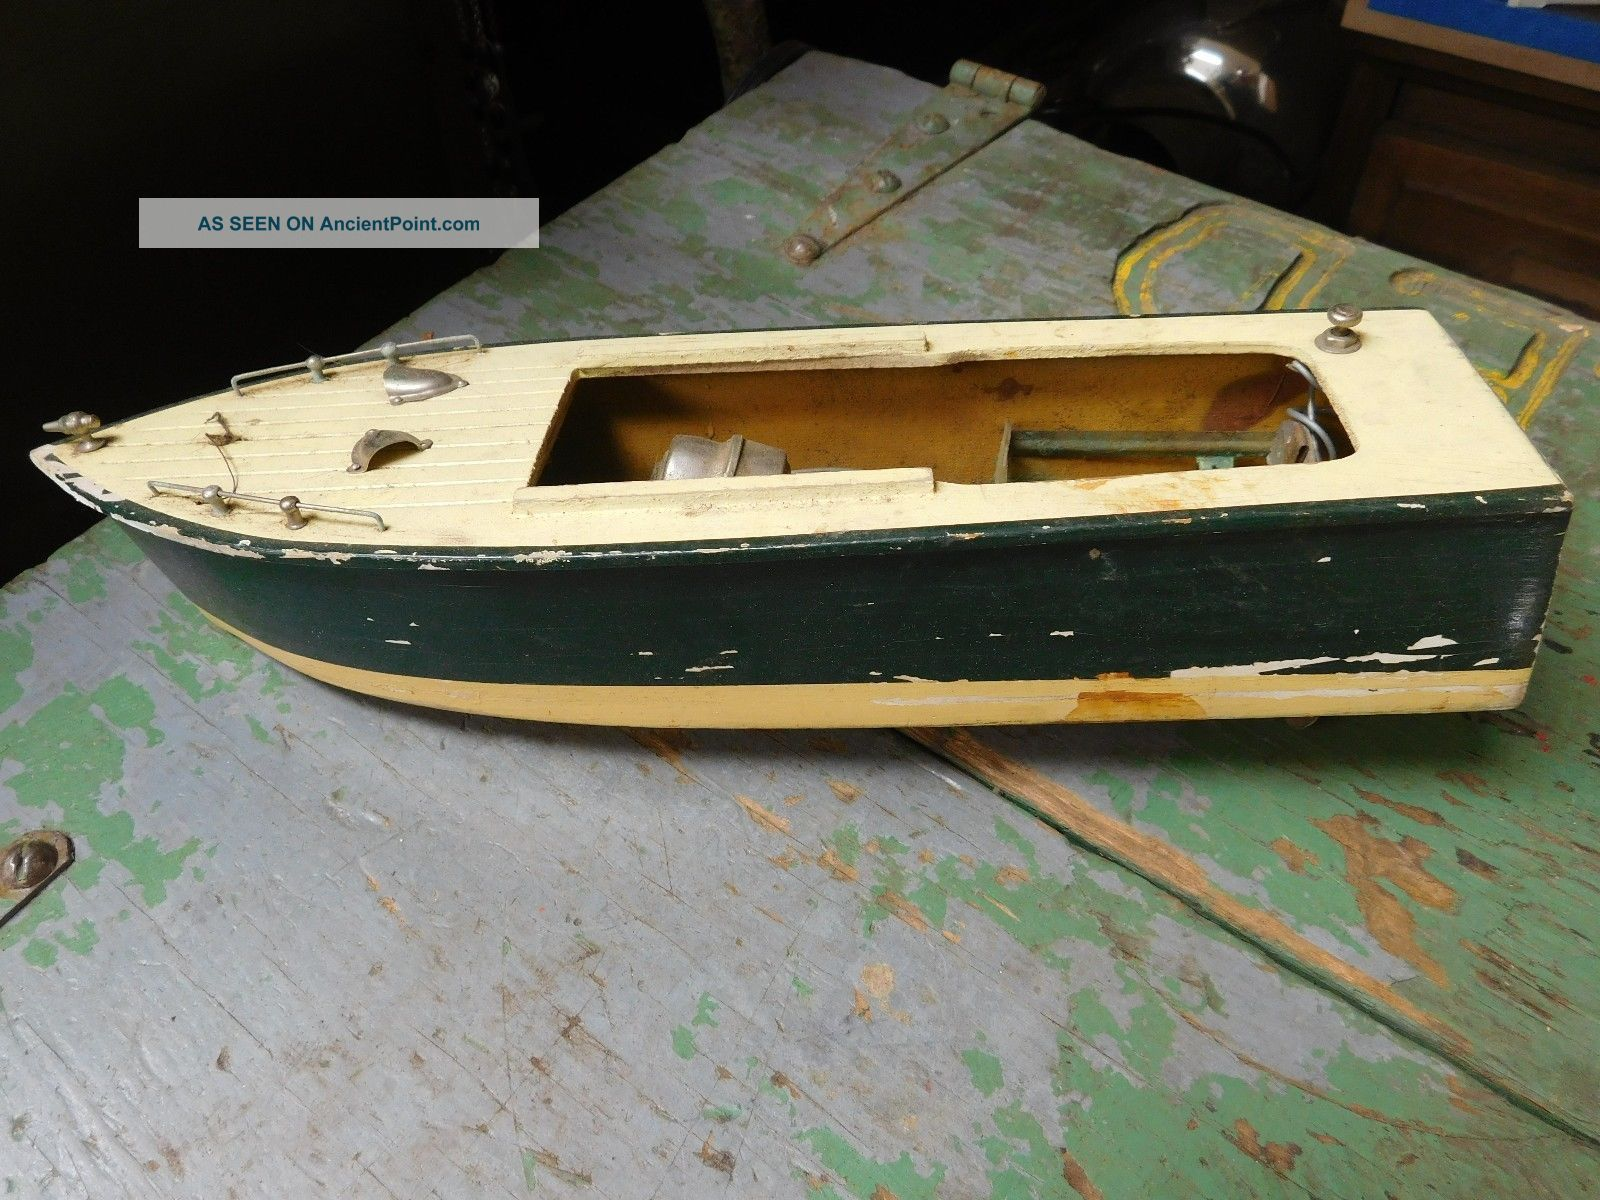 Vintage Motorized Battery Operated Pond Yacht Needs Work Other Maritime Antiques photo